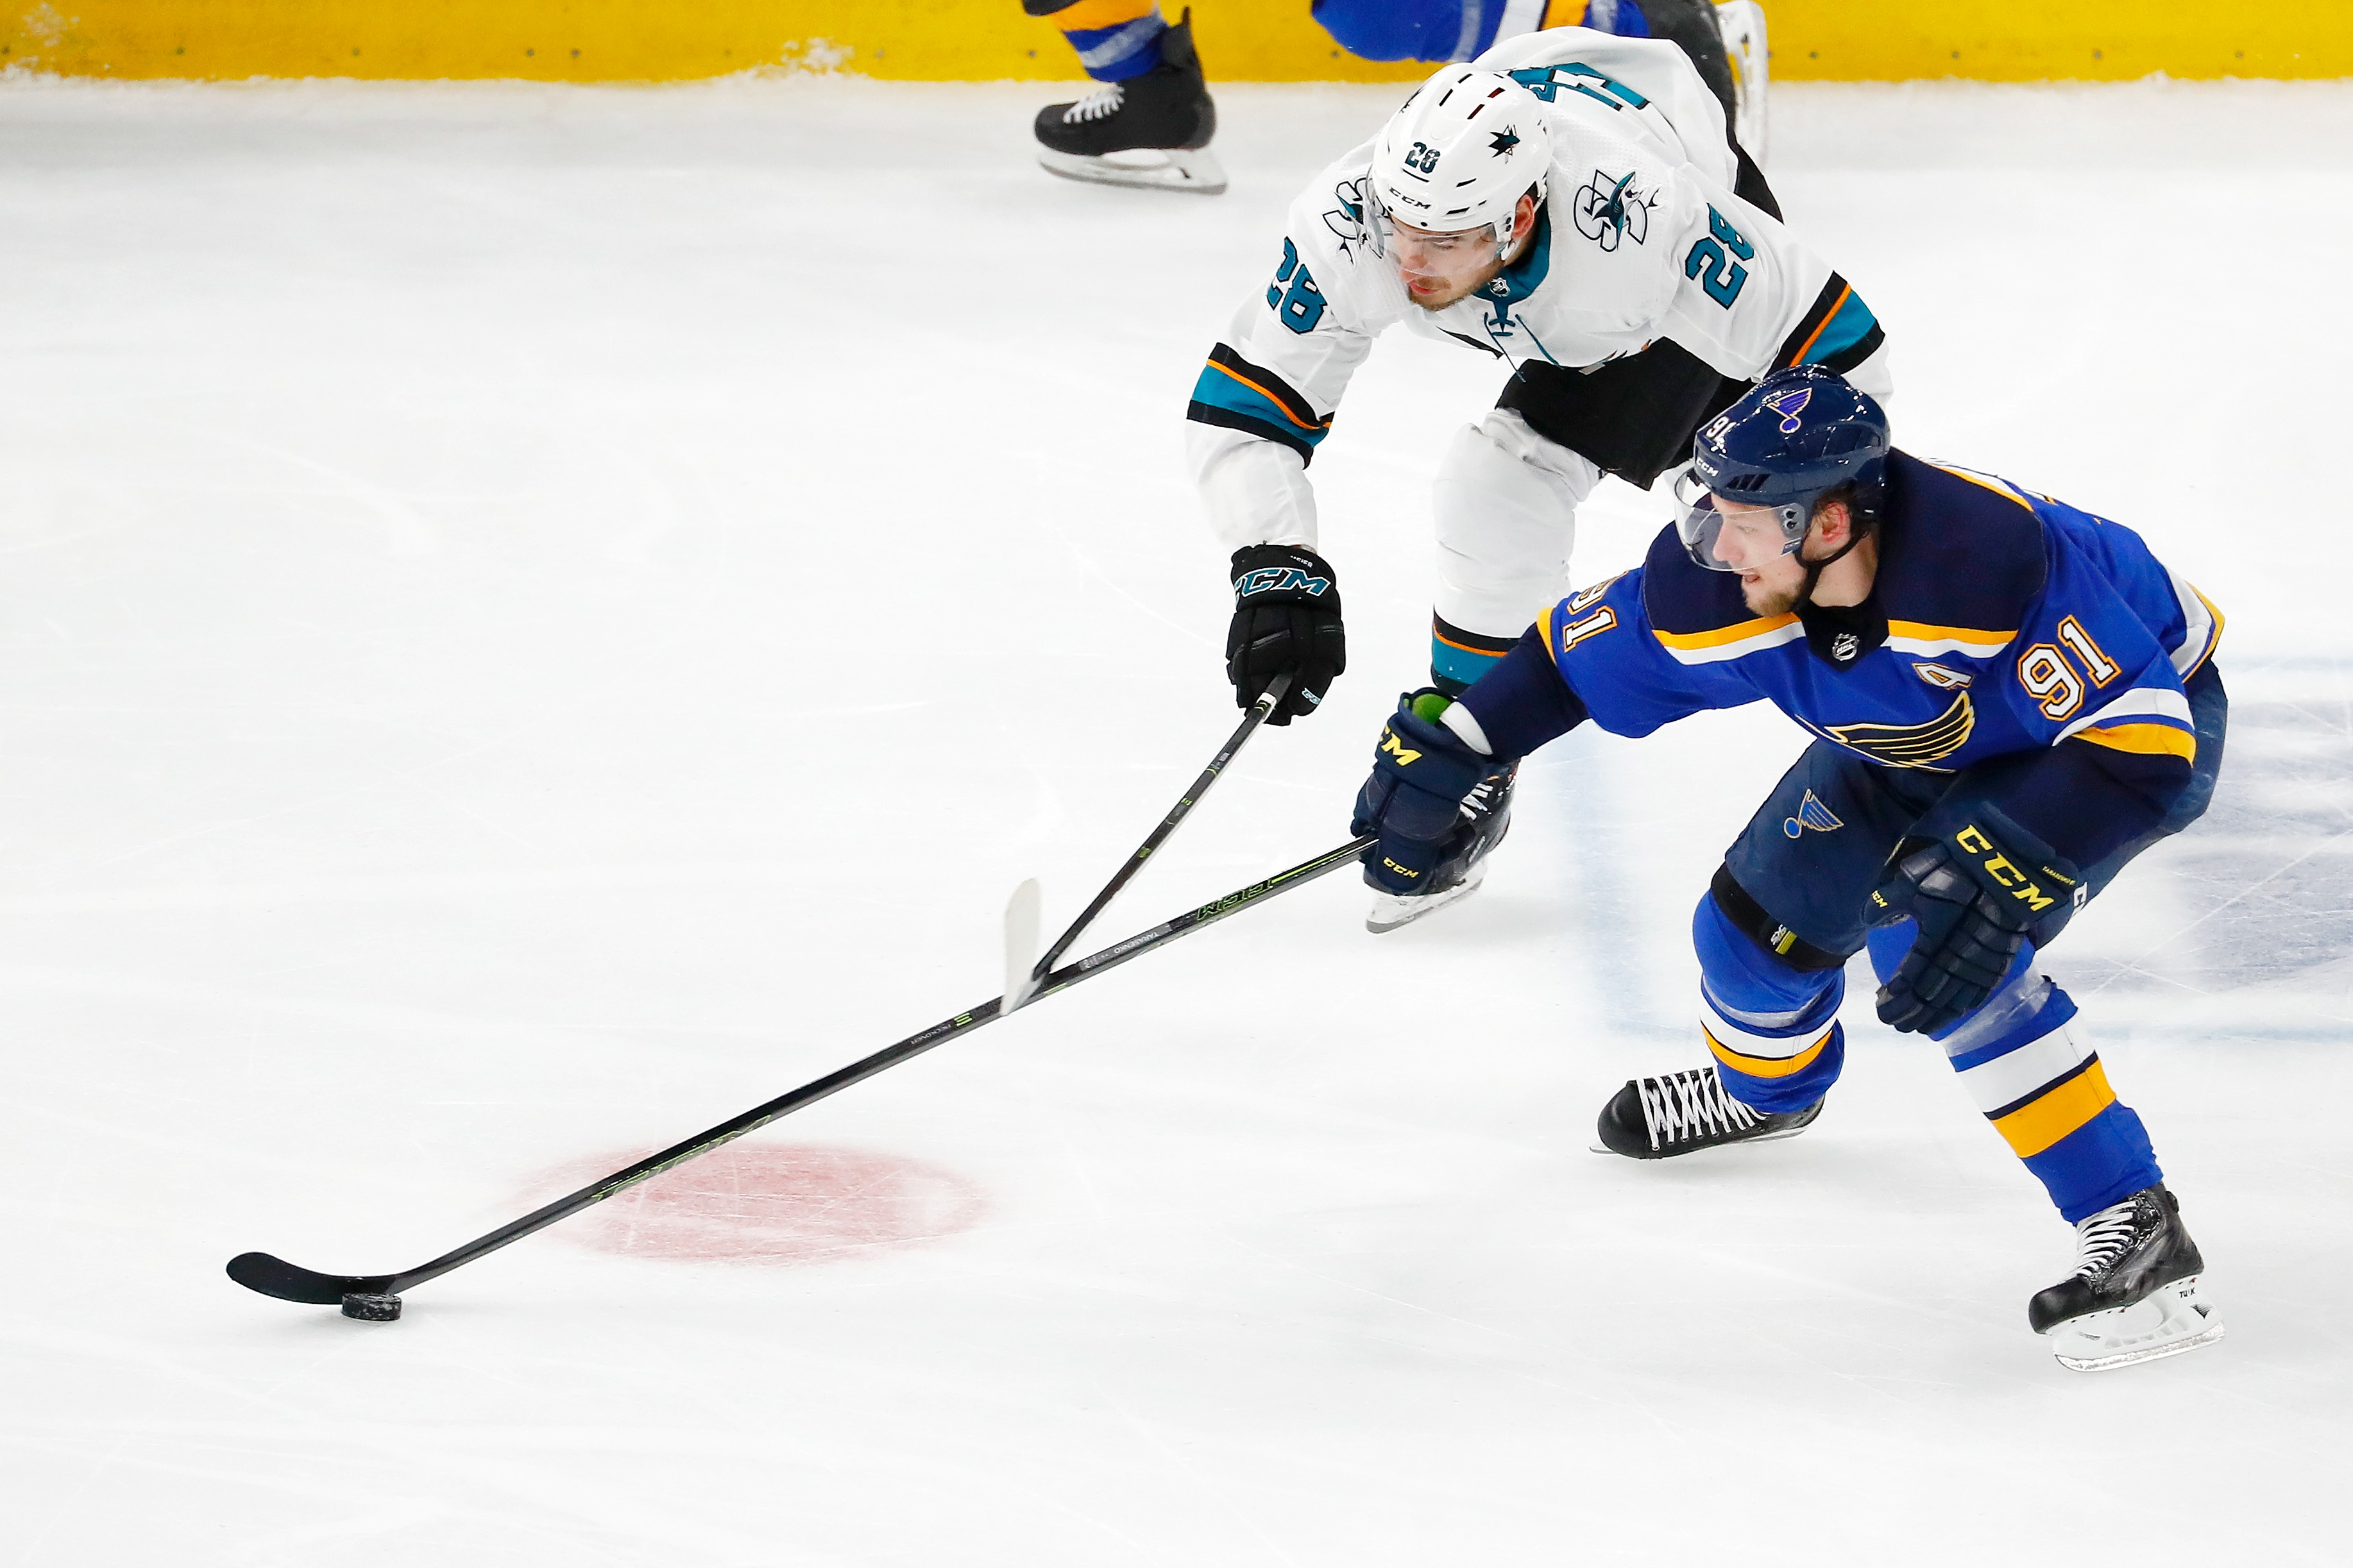 May 21, 2019; St. Louis, MO, USA; St. Louis Blues right wing Vladimir Tarasenko (91) and San Jose Sharks right wing Timo Meier (28) battle for a loose puck during the second period in game six of the Western Conference Final of the 2019 Stanley Cup Playof